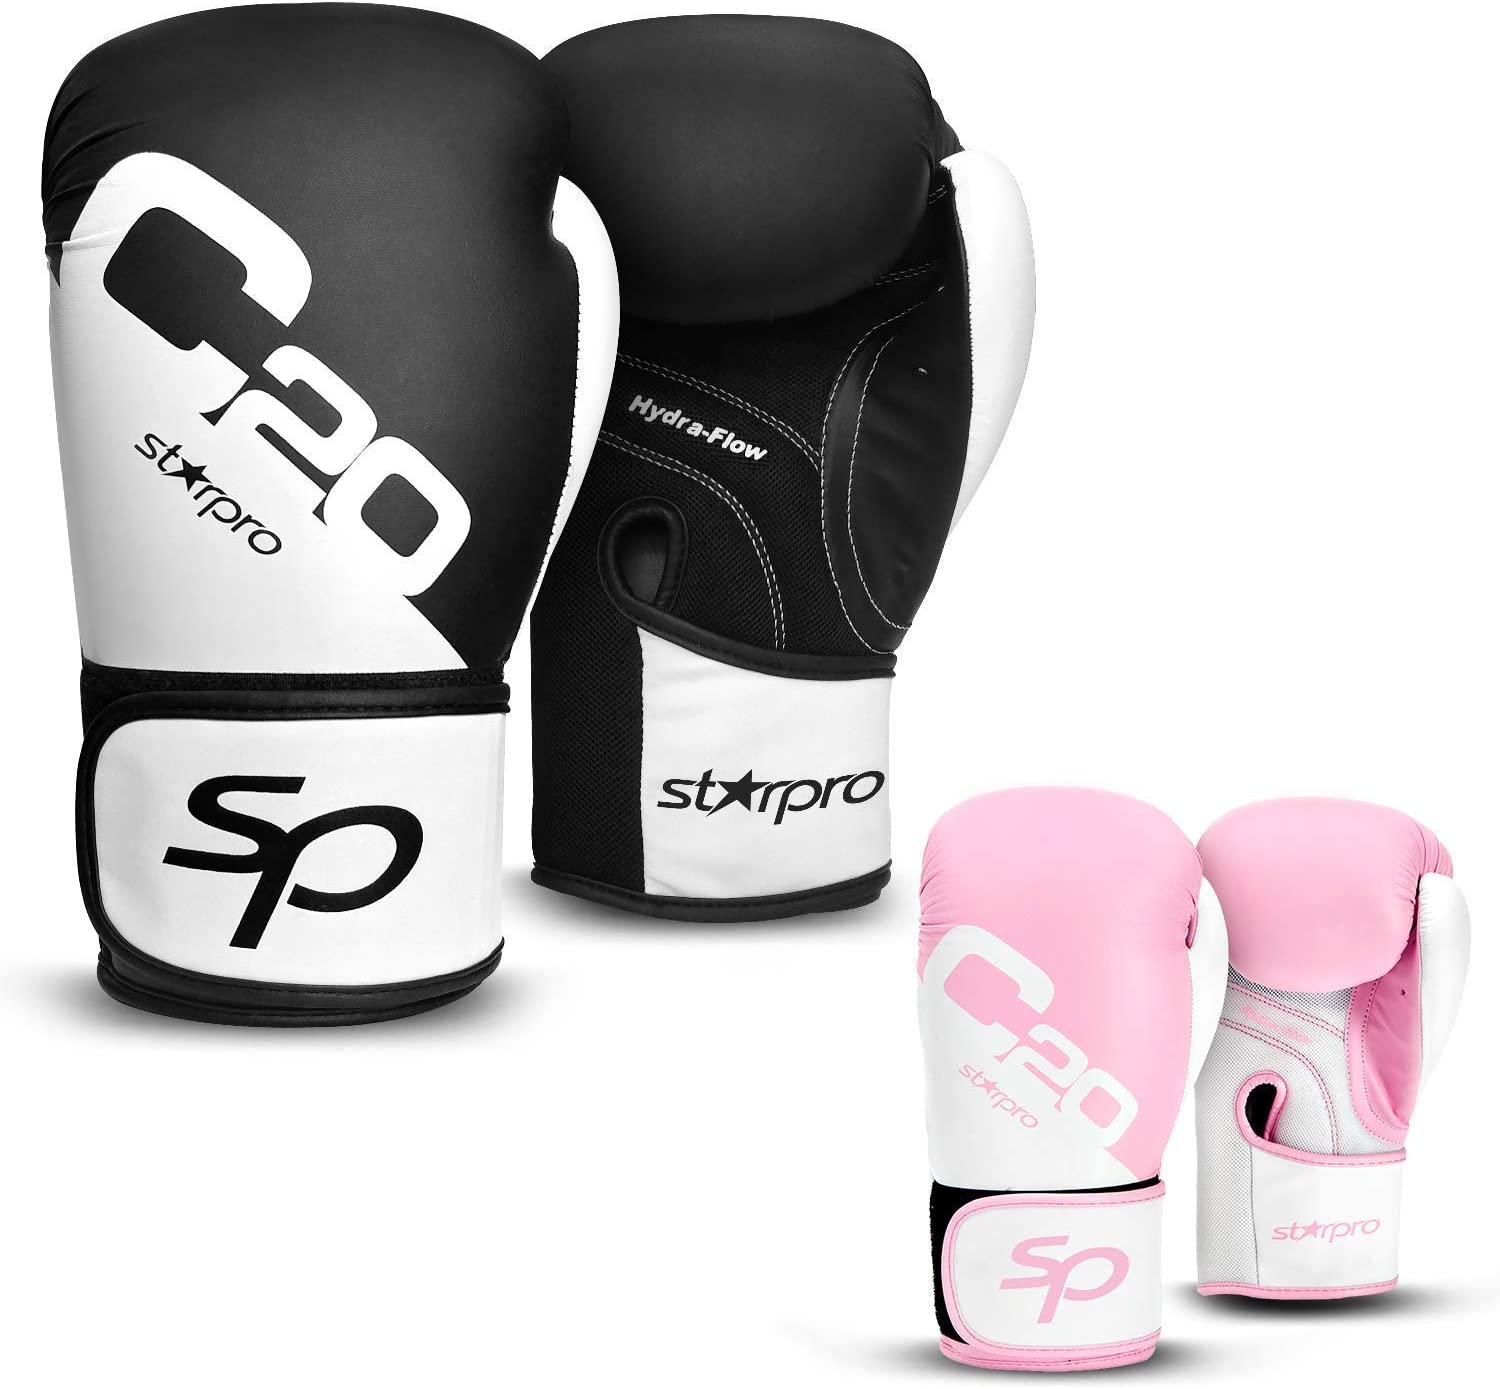 PU Leather Boxing Gloves Muay Training Punching Sparring Gloves Fighting Mitt